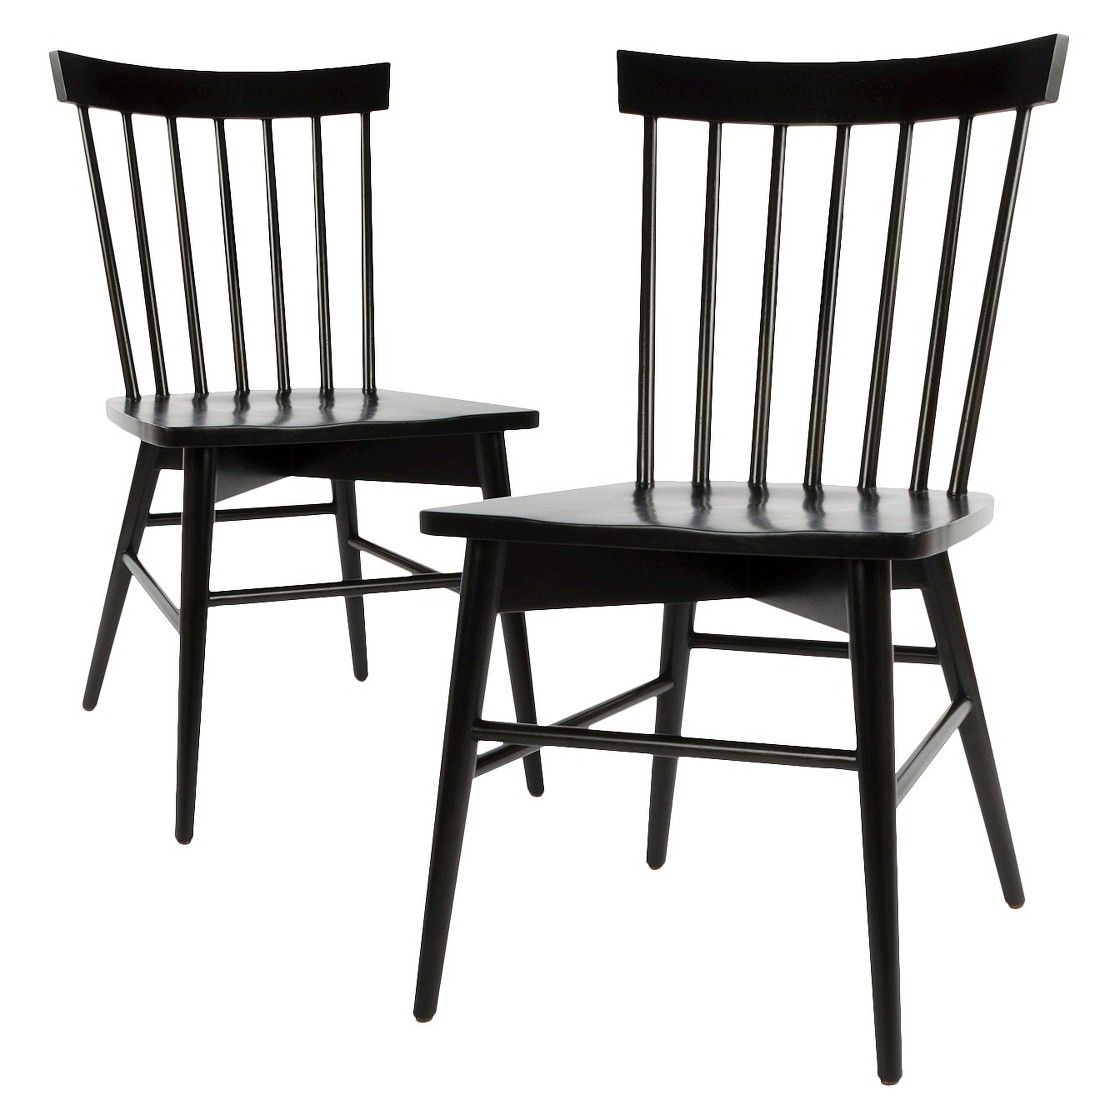 Windsor dining chairs  sc 1 st  Foter & Windsor Dining Chairs - Foter